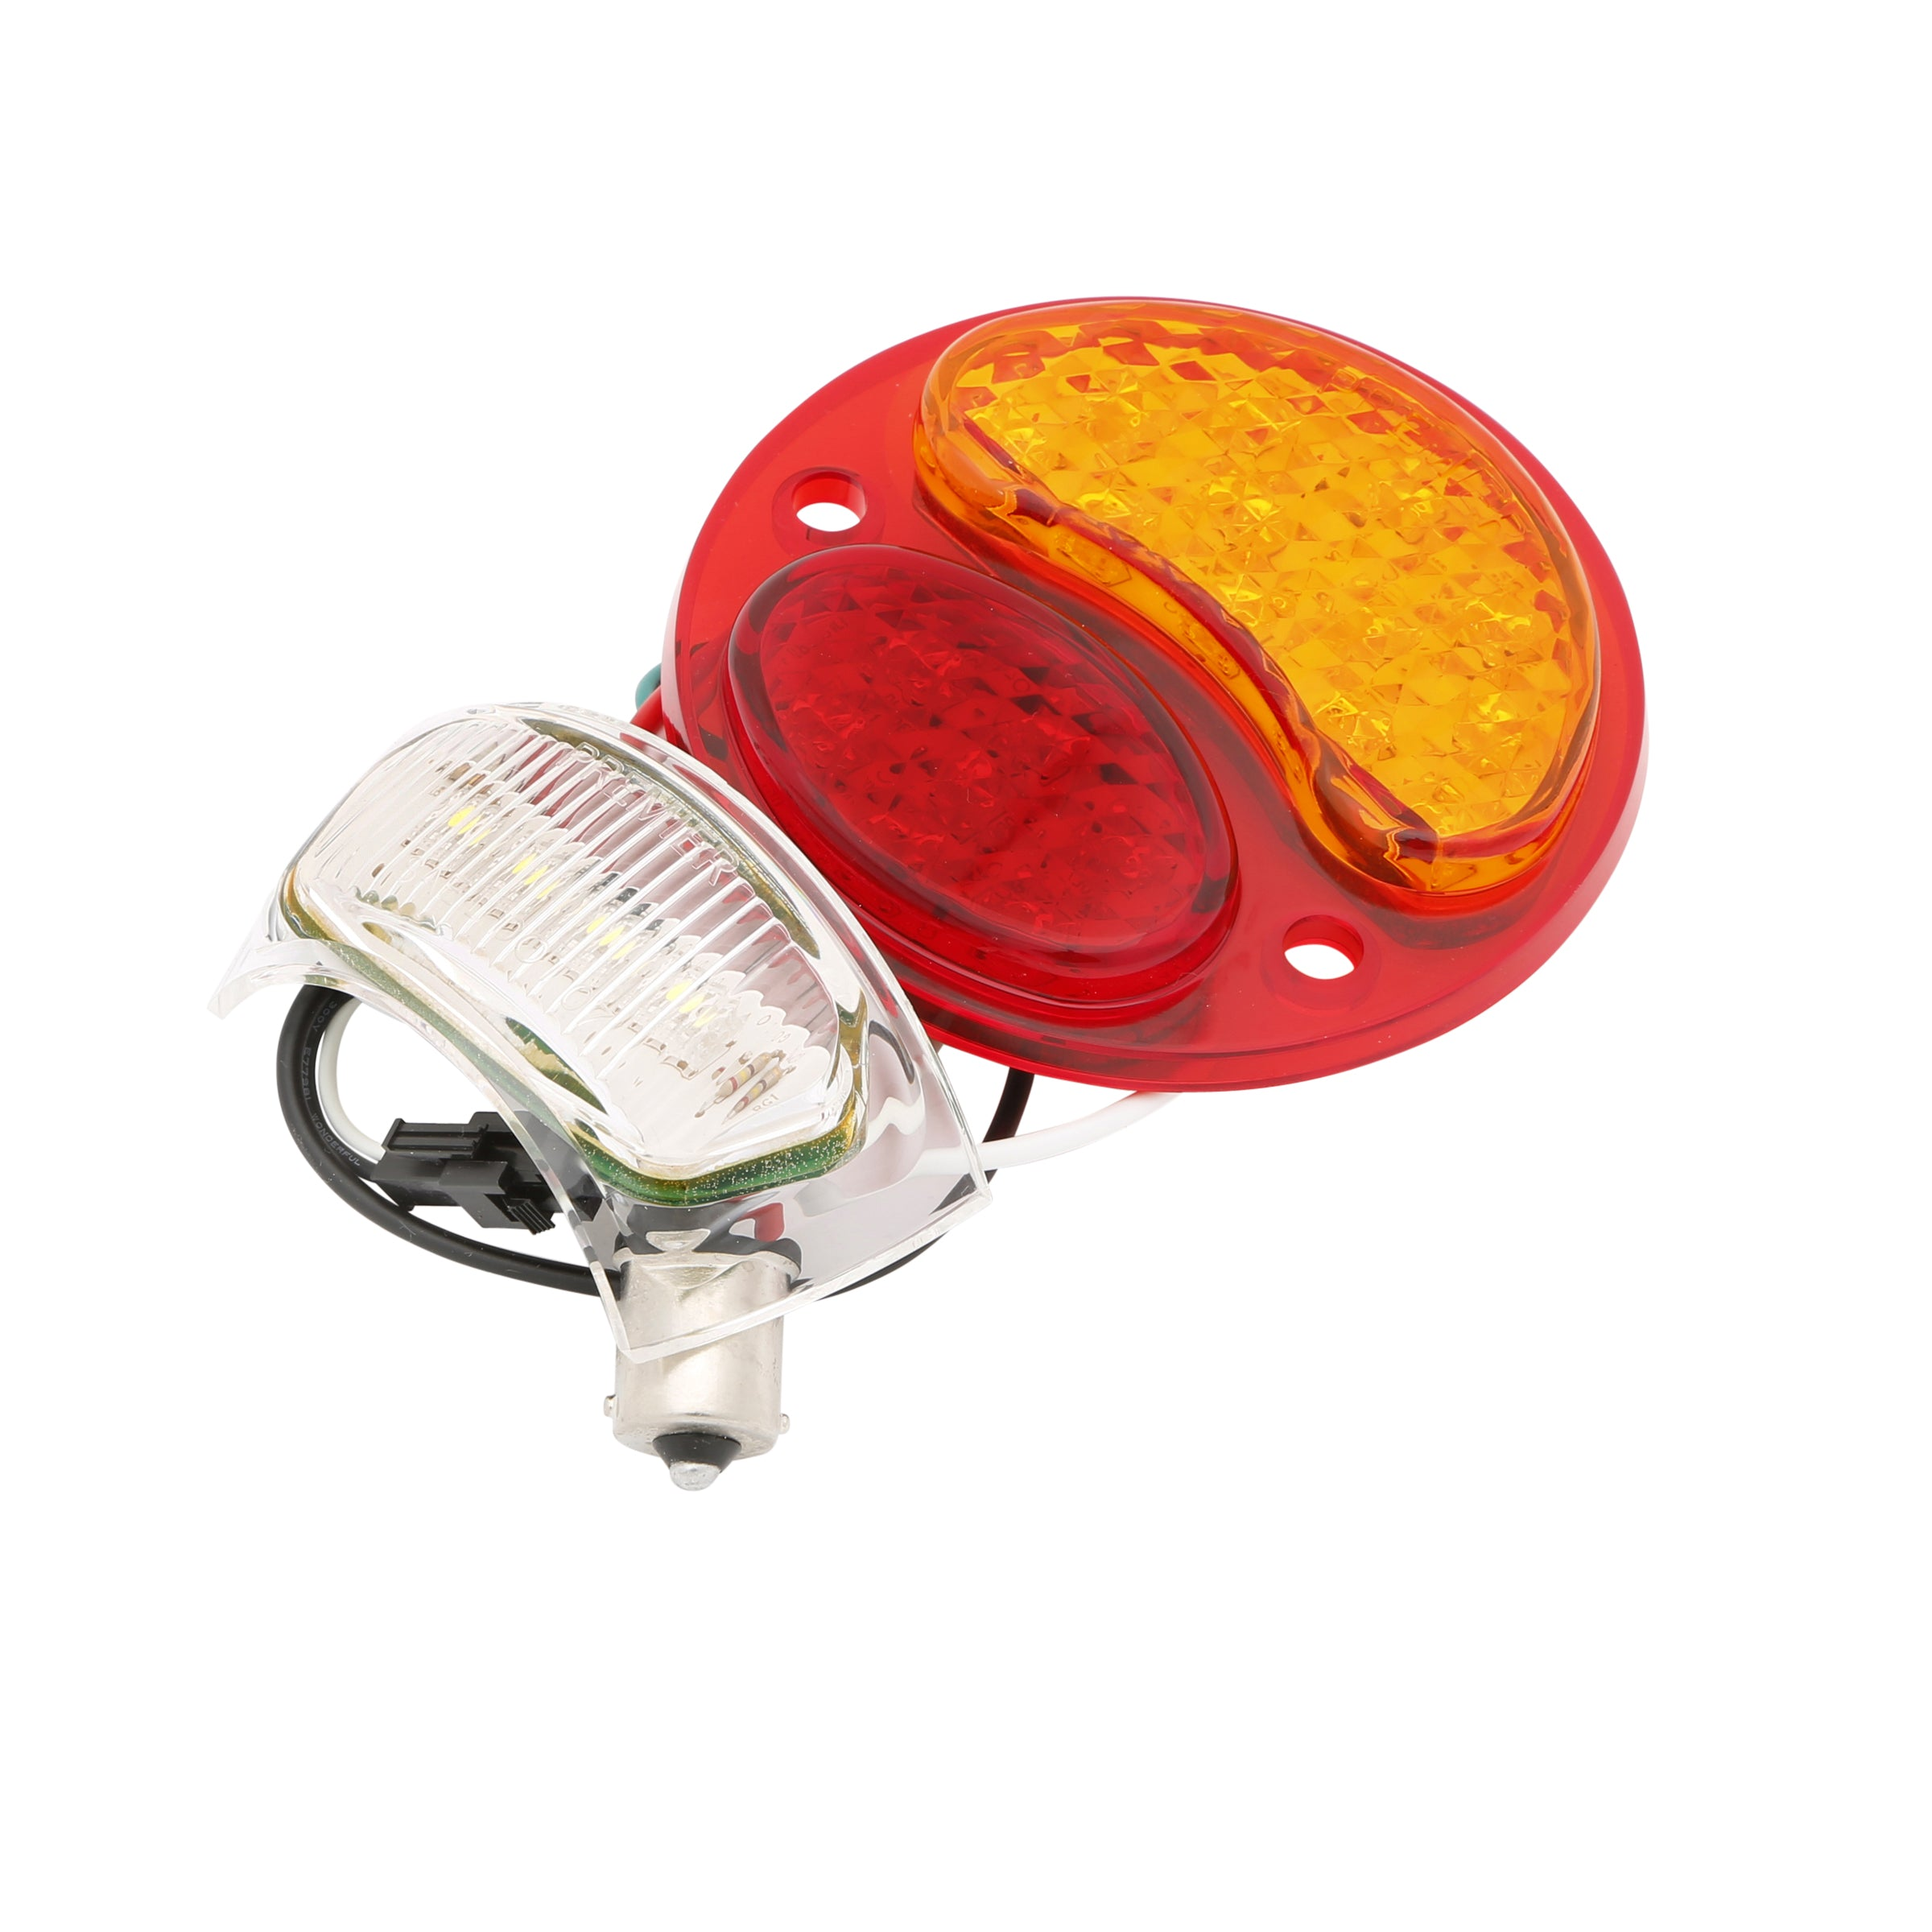 Taillight Lens Insert (LED 12 Volt Red/Amber) • 1928-31 Model A Ford Left